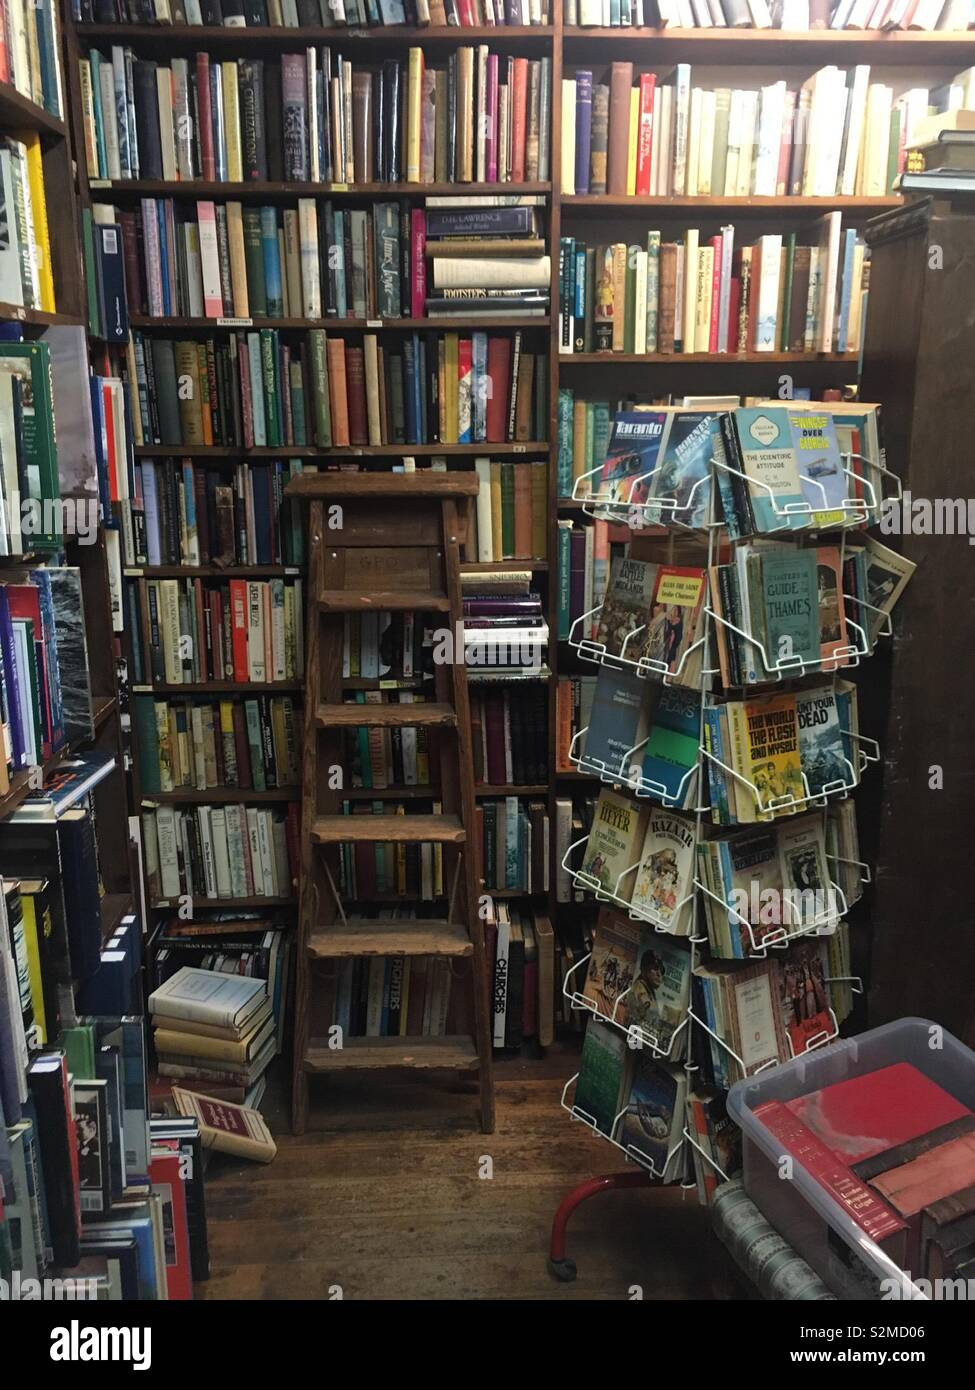 Interior of an old bookshop. - Stock Image